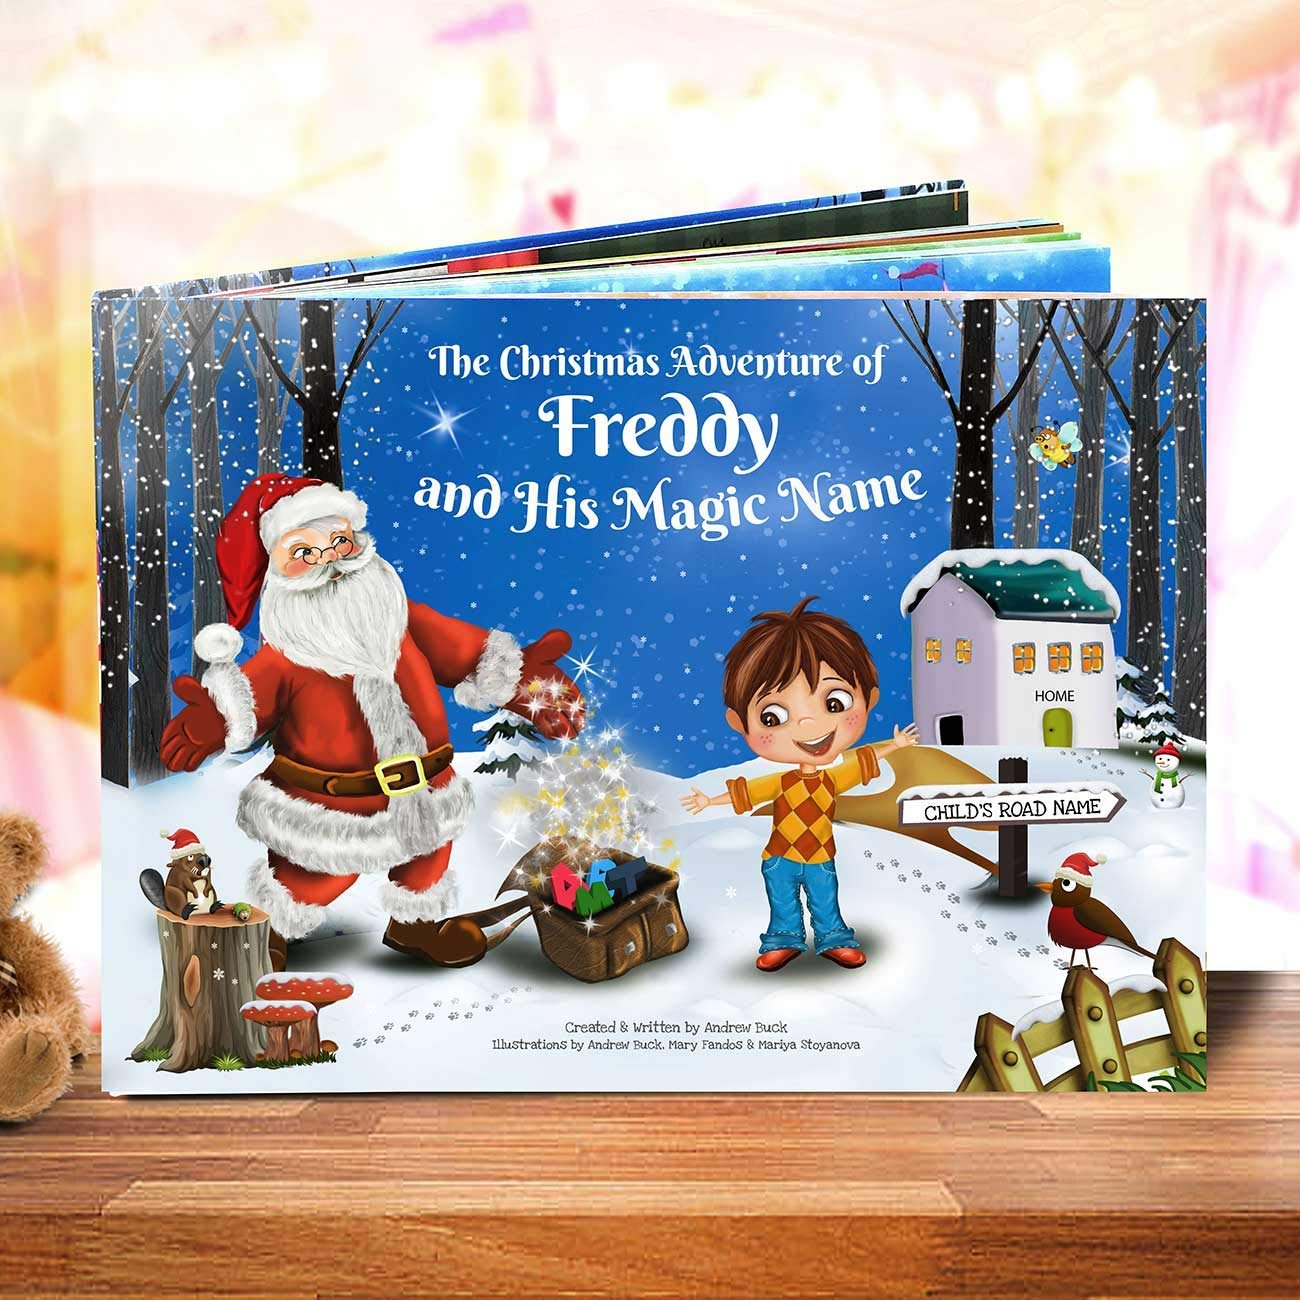 Customised Christmas Story Book - Totally Unique for Every Child - Great Xmas Present for Kids - Stocking Filler